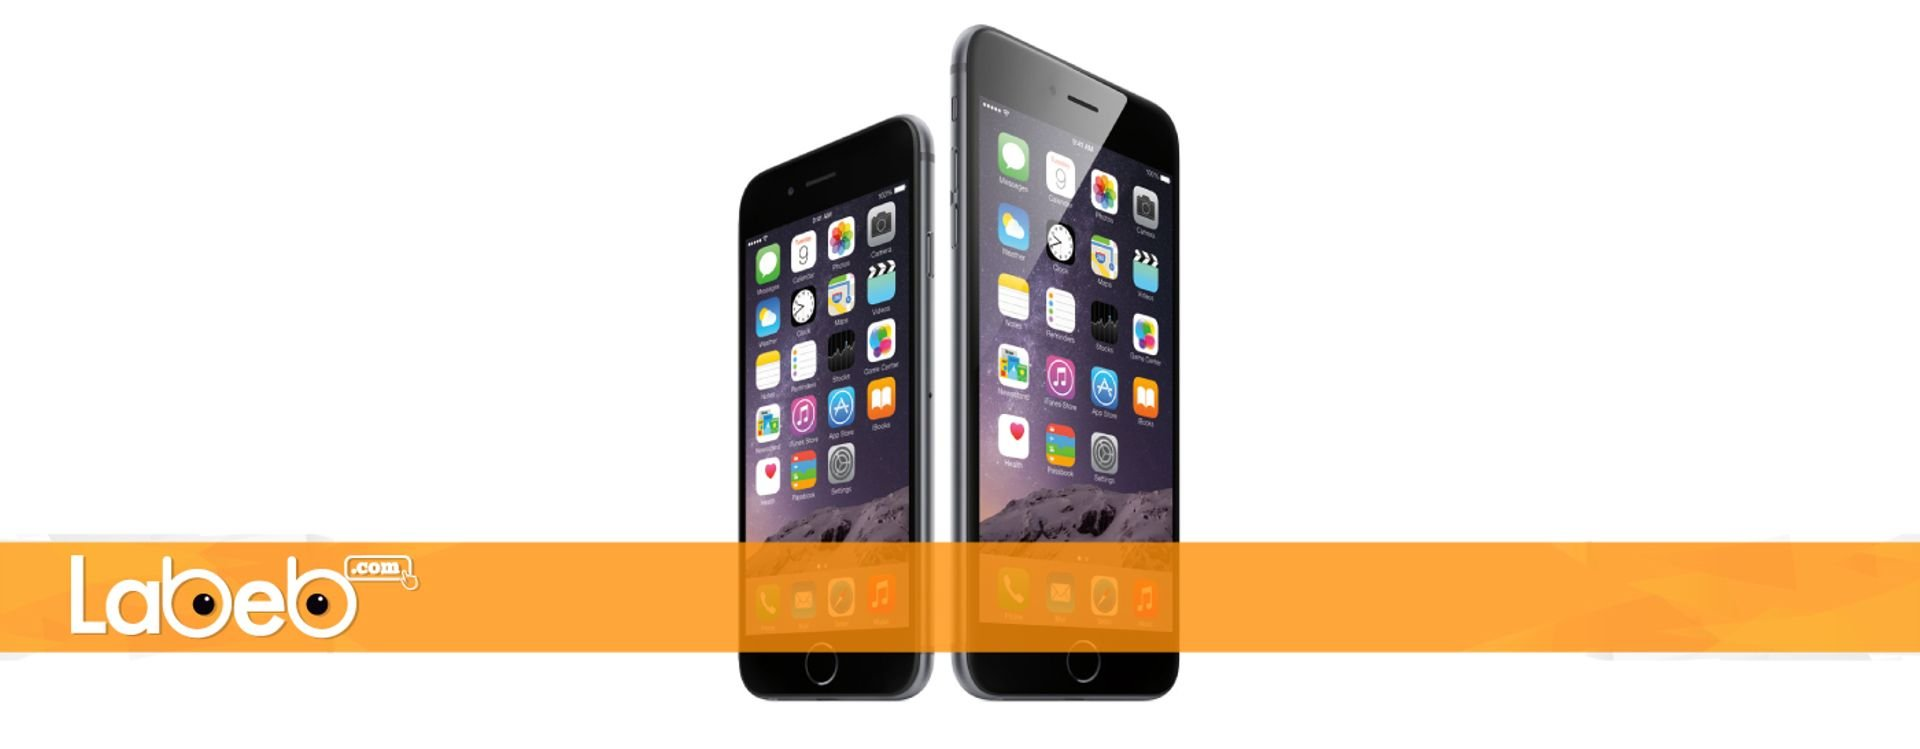 Main differences between iPhone 6 and iPhone 6s